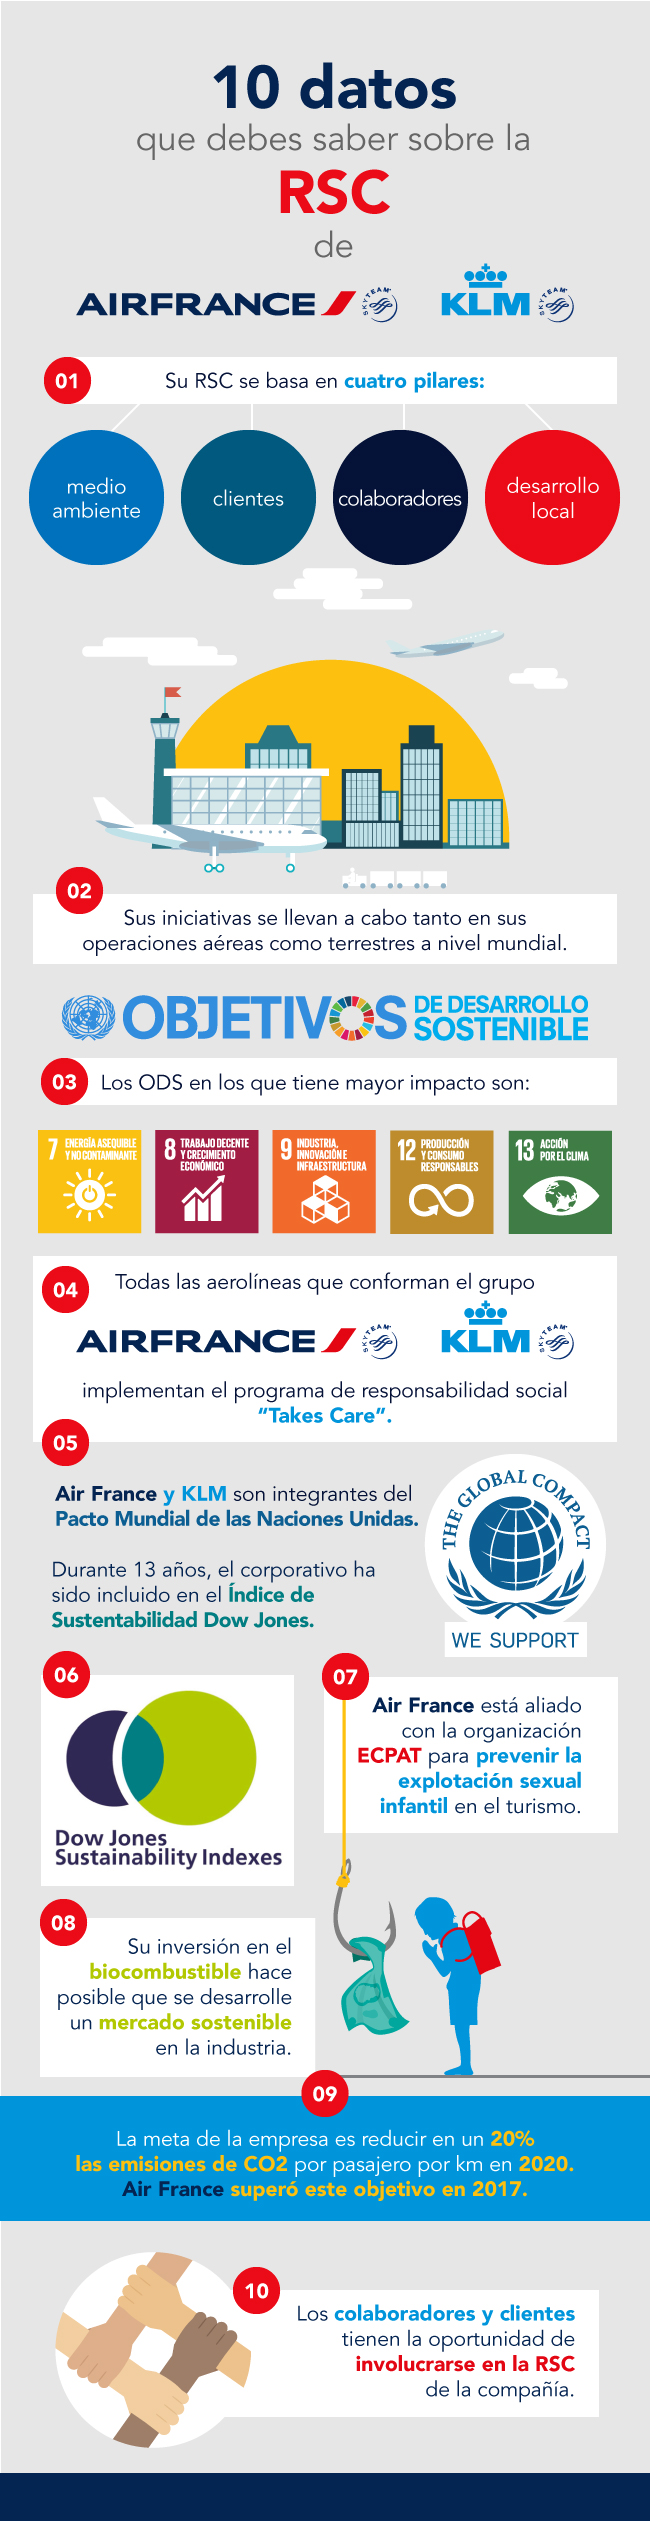 reporte de responsabilidad corporativa de air france-klm, air france-klm, air france, klm, rse de air france-klm, responsabilidad social de air france-klm, sustentabilidad de air france-klm